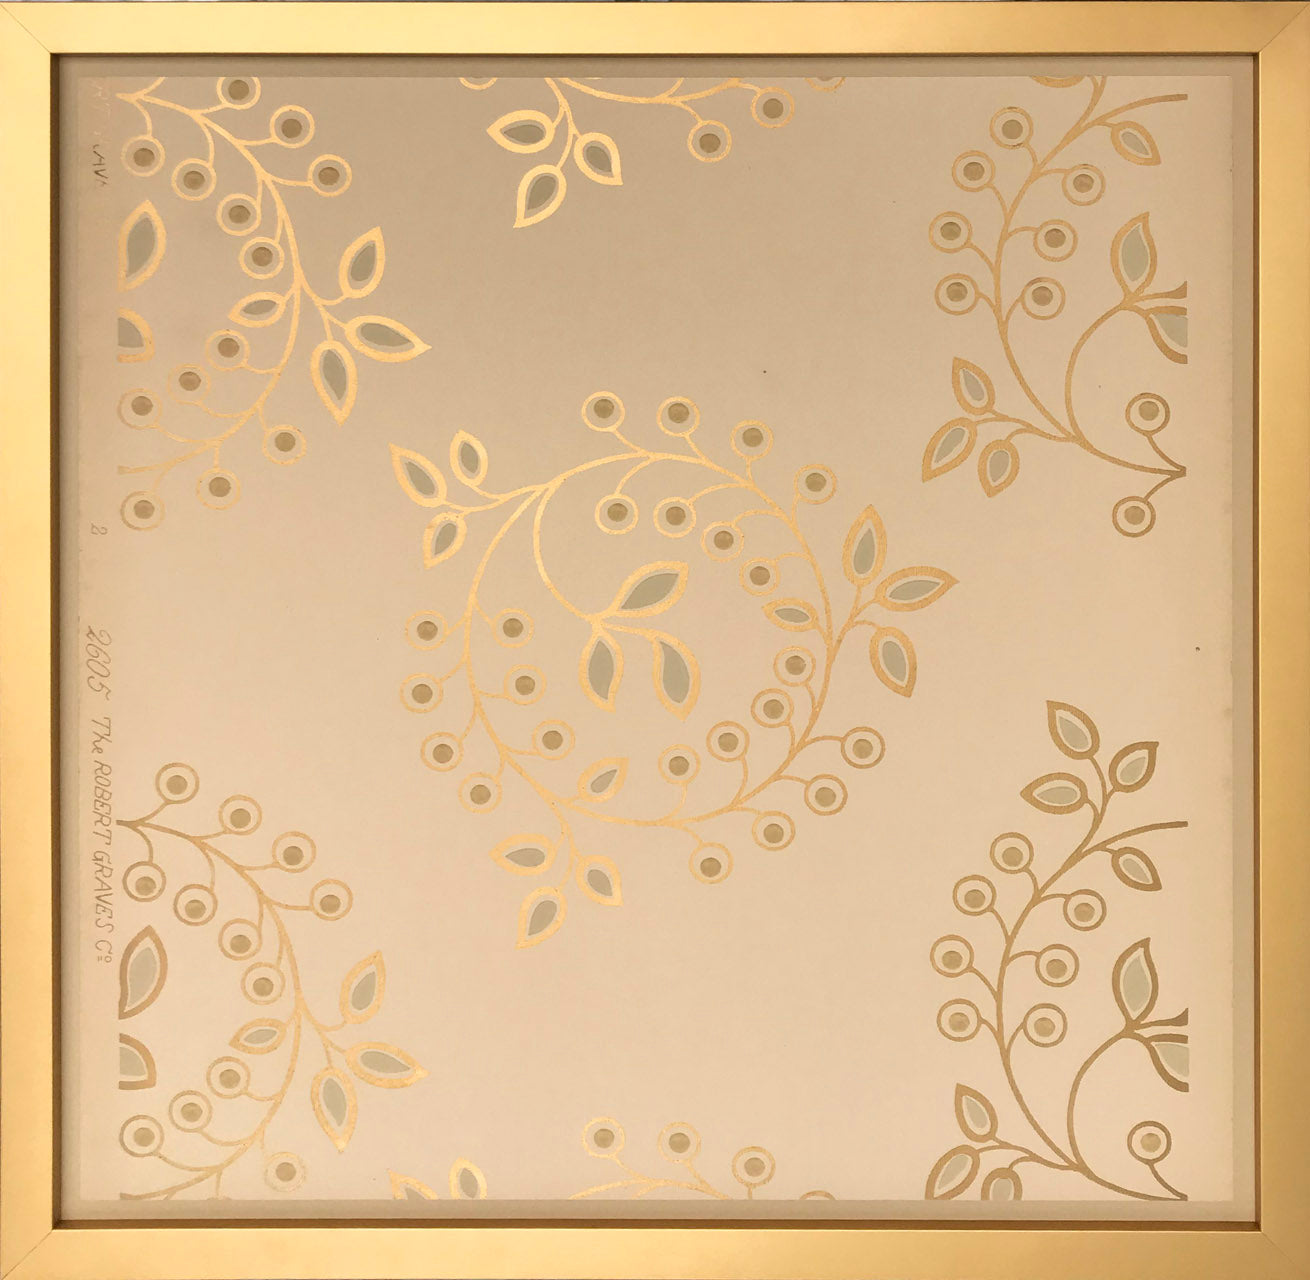 Gilt Circles with Leaves- Framed Antique Wallpaper Art